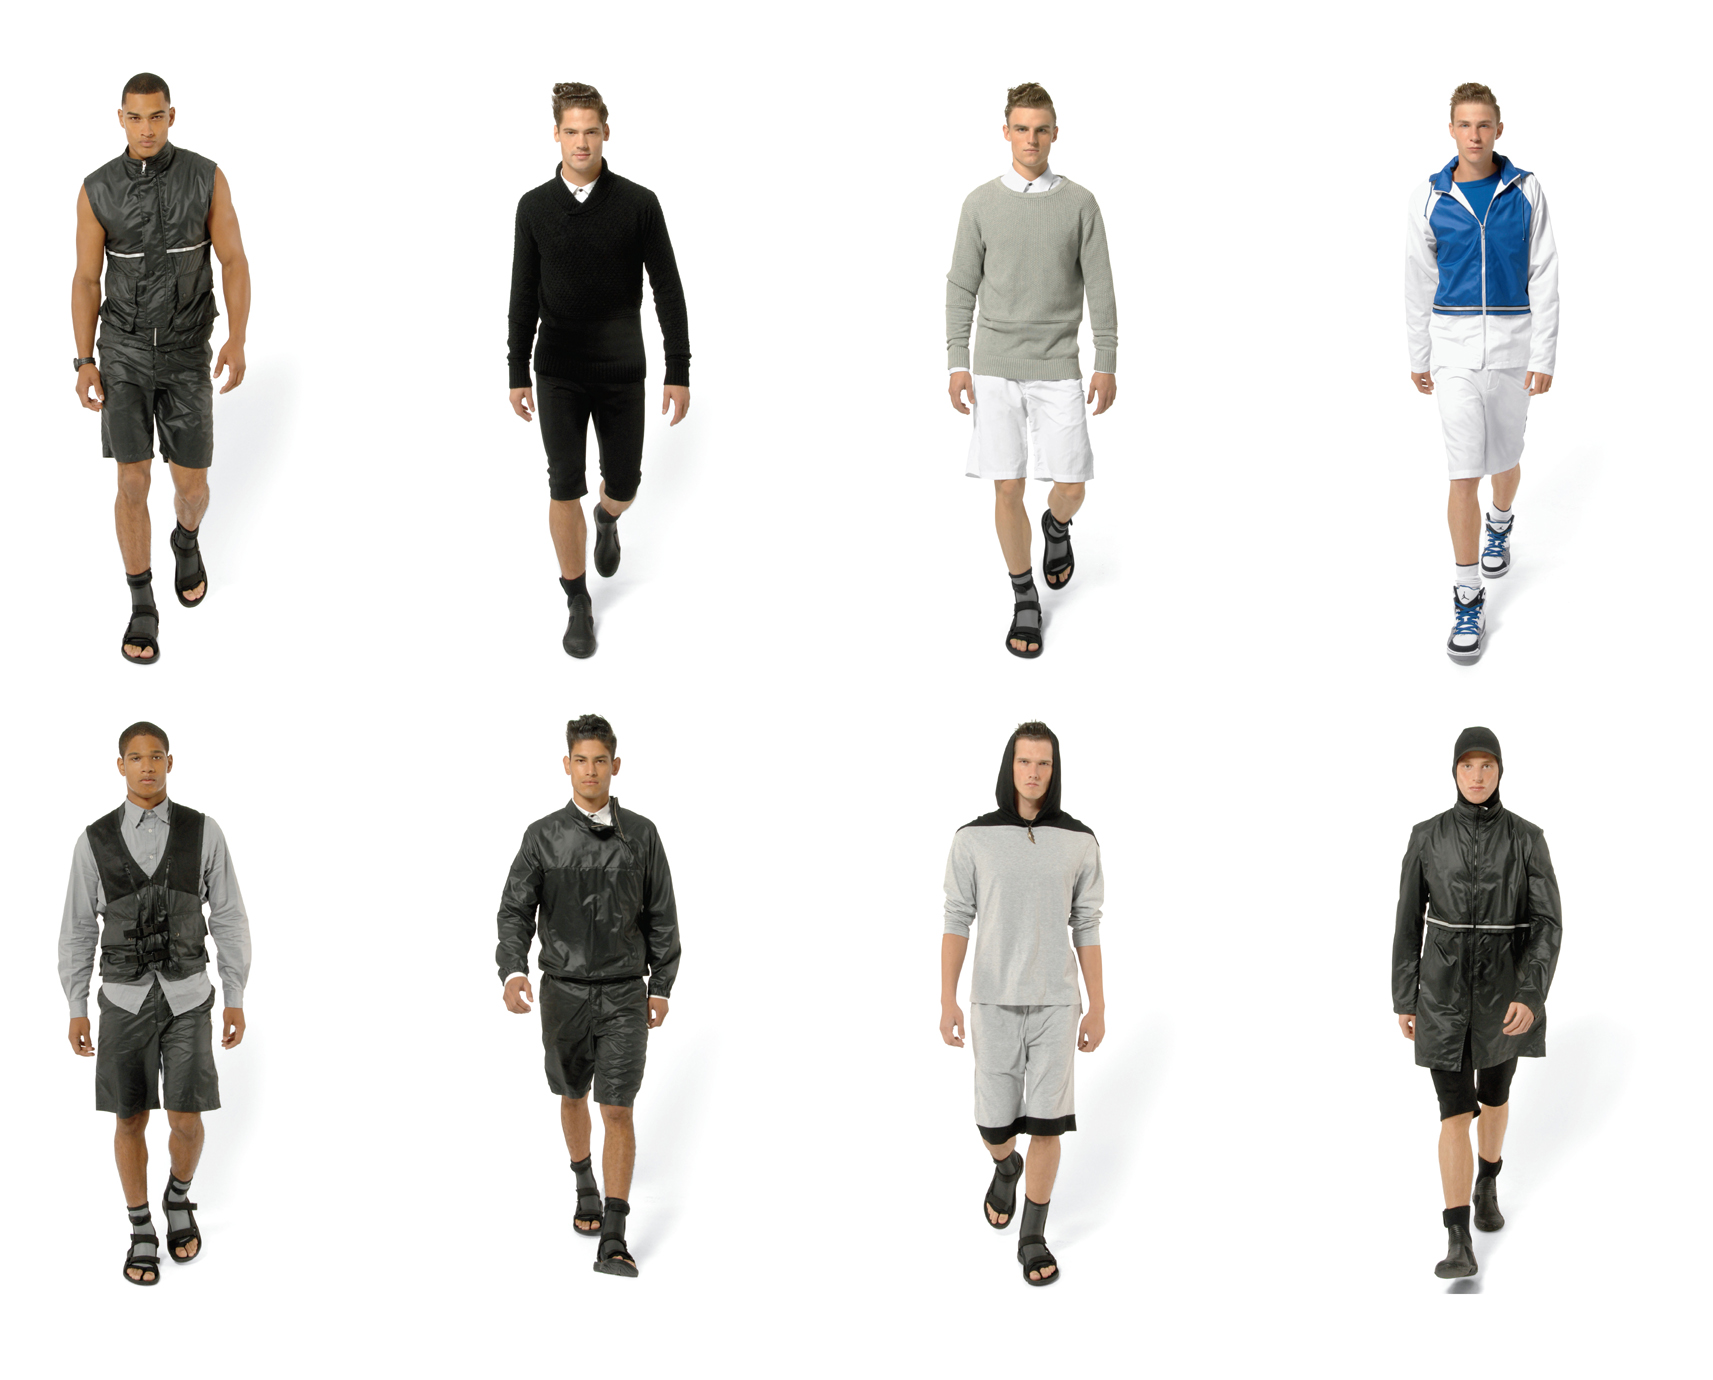 Spring/Summer 2011 Collection